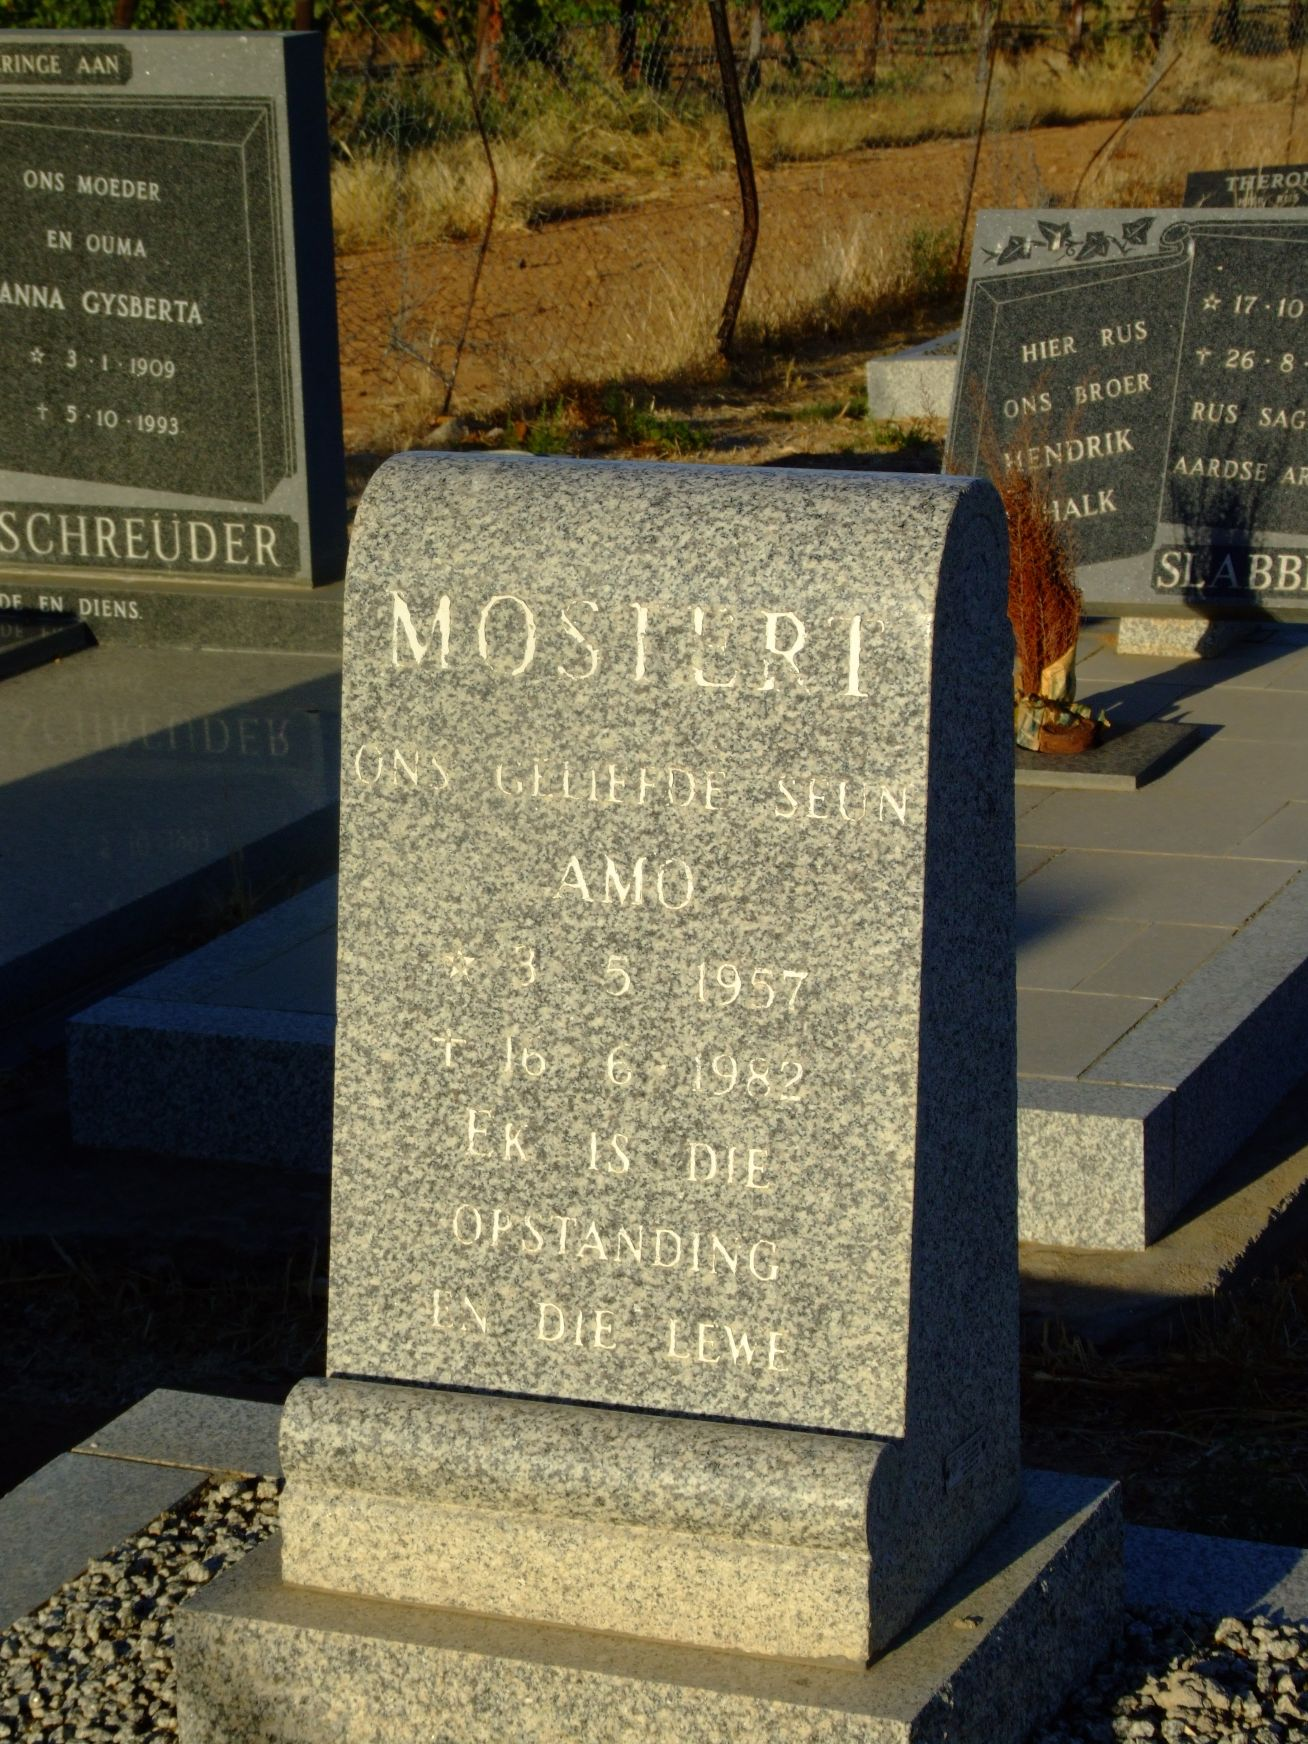 Mostert, Amos